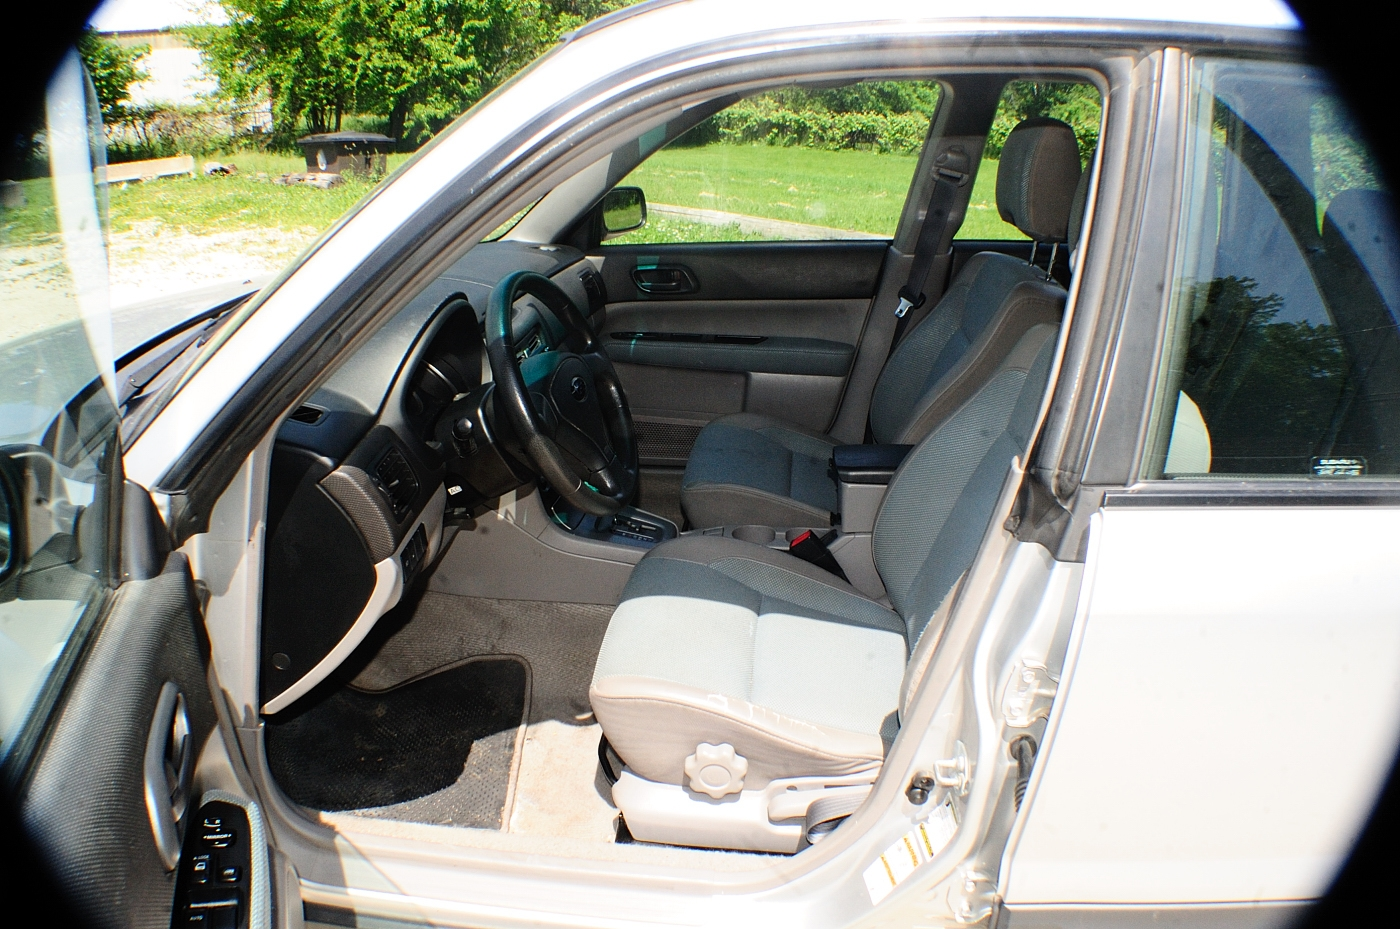 2005 Subaru Forester AWD Silver Used Wagon Sale Highland Park Kildeer Winthrop Harbor